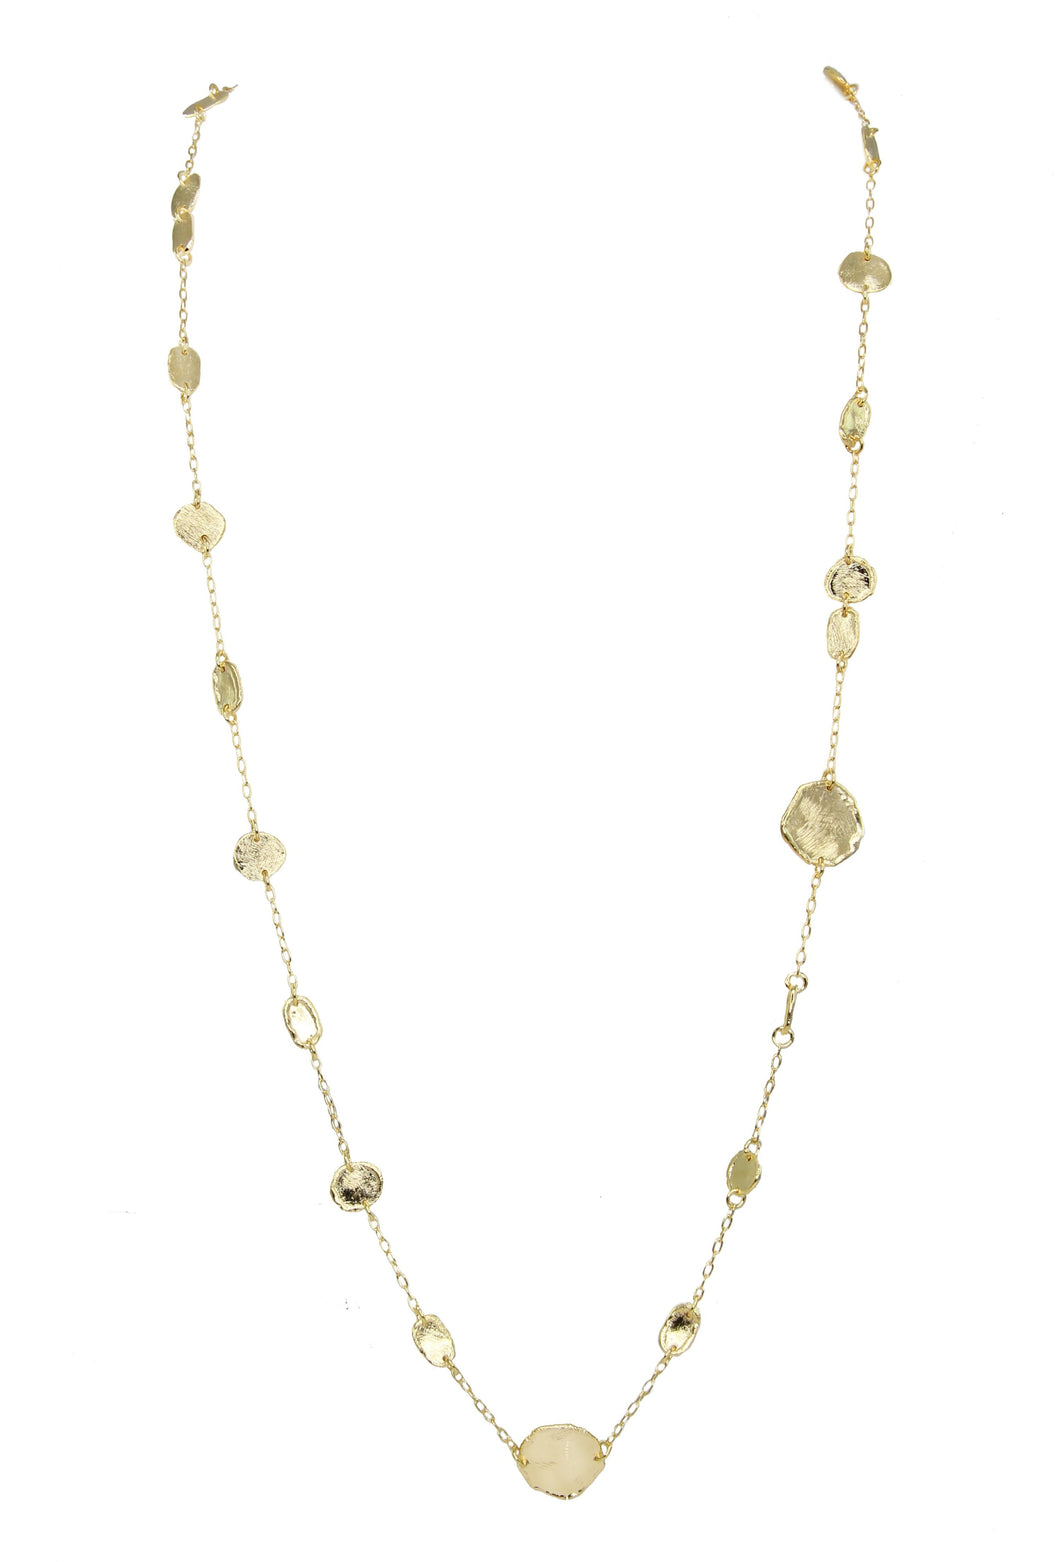 Dorine Long Molten Motif Necklace